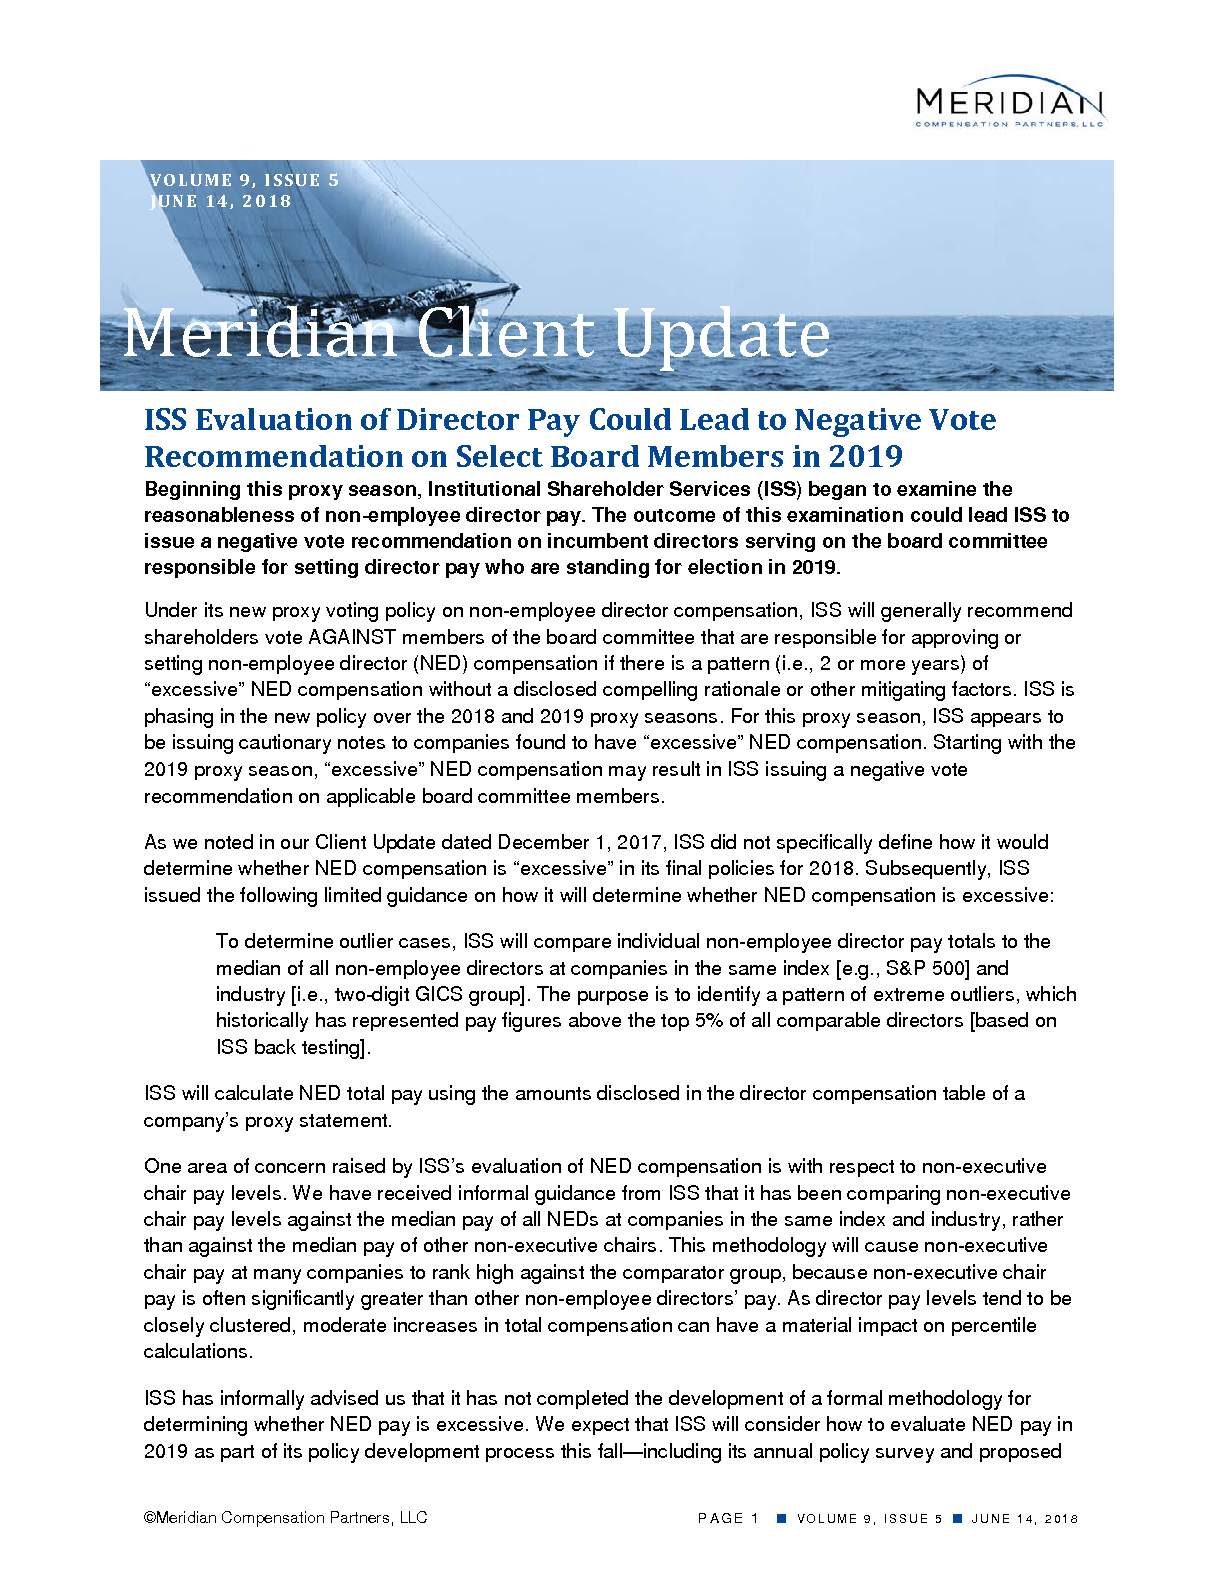 ISS Evaluation of Director Pay Could Lead to Negative Vote Recommendation on Select Board Members in 2019 (PDF)